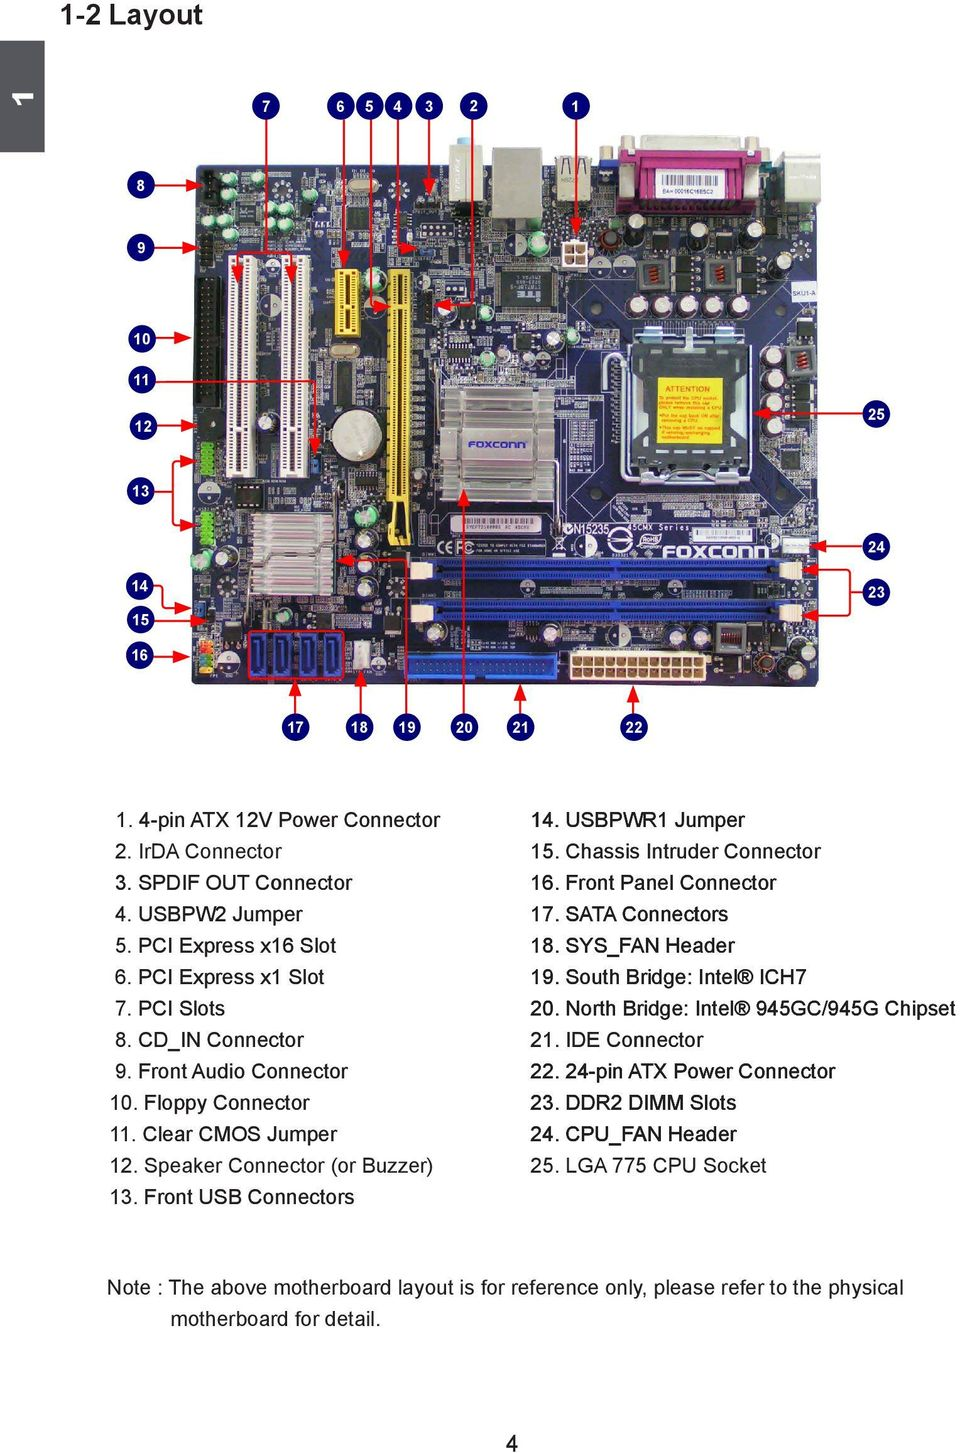 45cmx 45gmx series motherboard user s manual pdf rh docplayer net